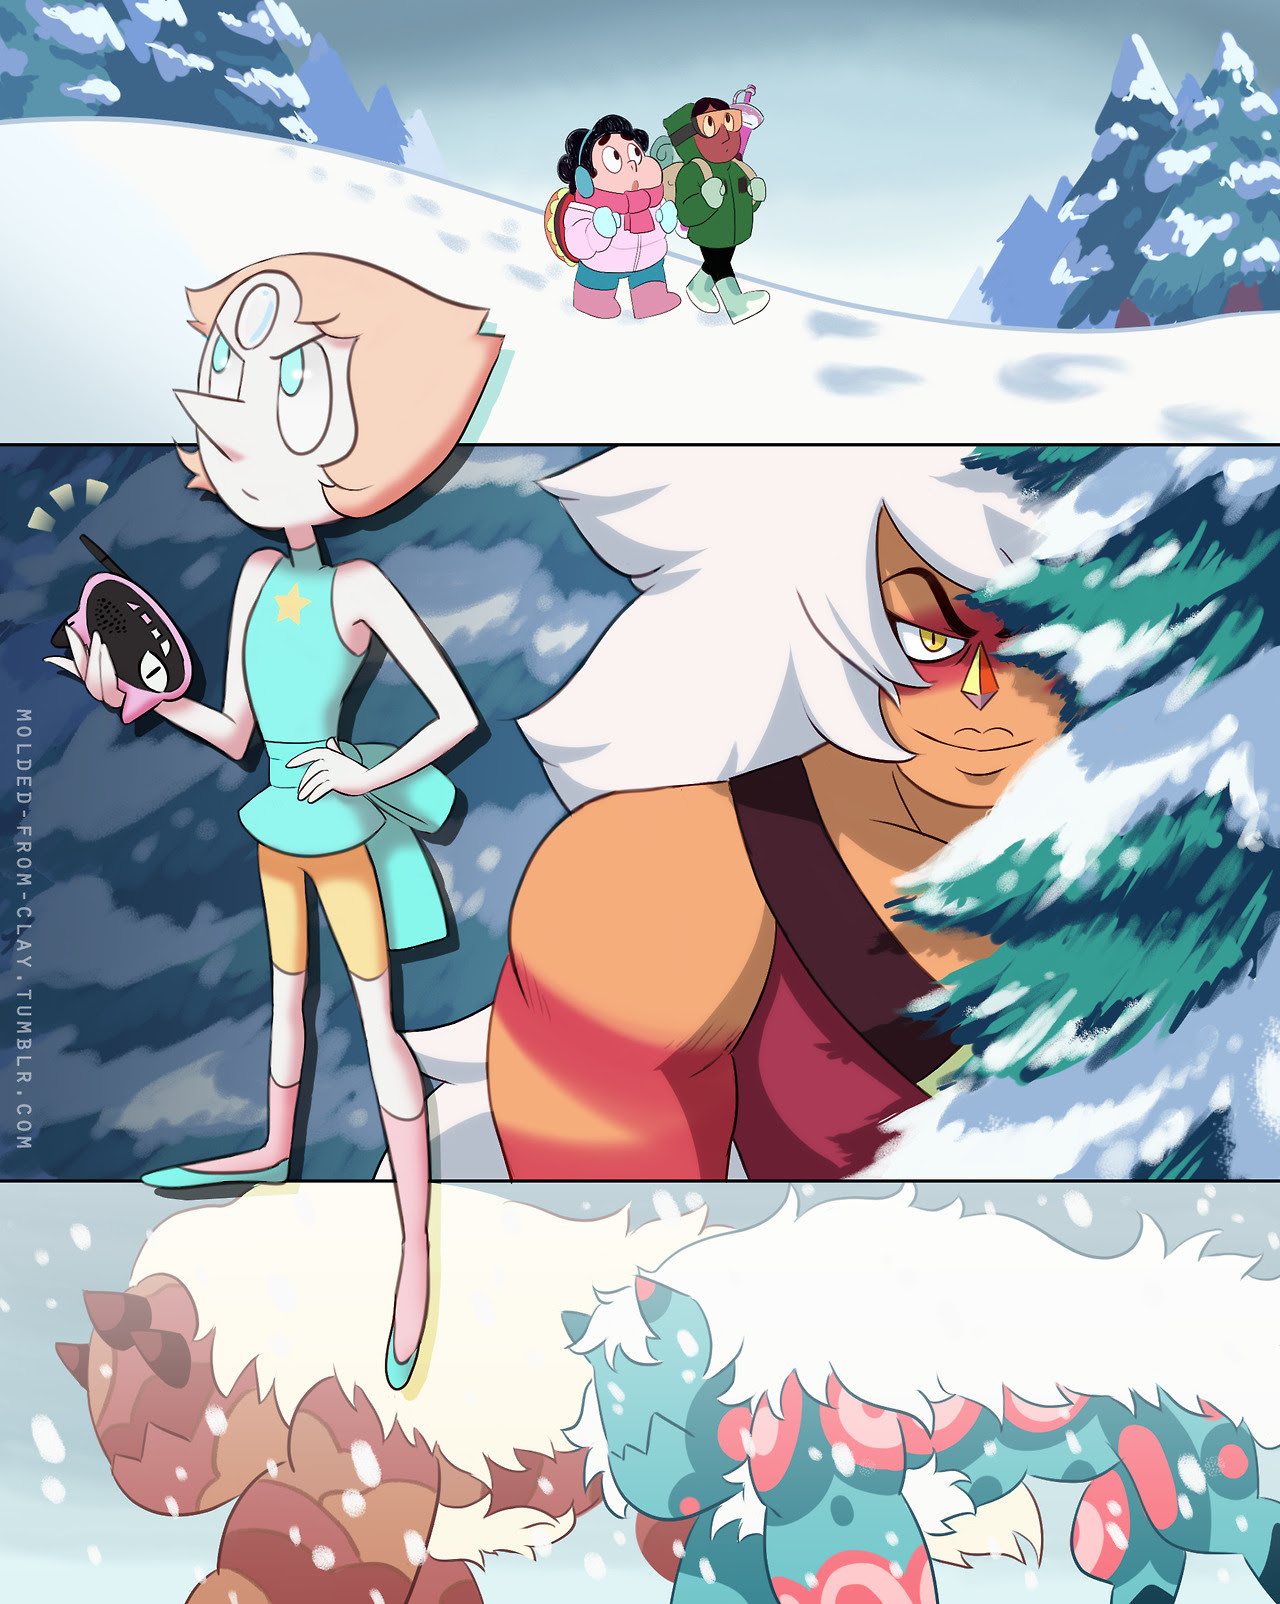 Gem Hunt aired one year ago today! ♡♡♡